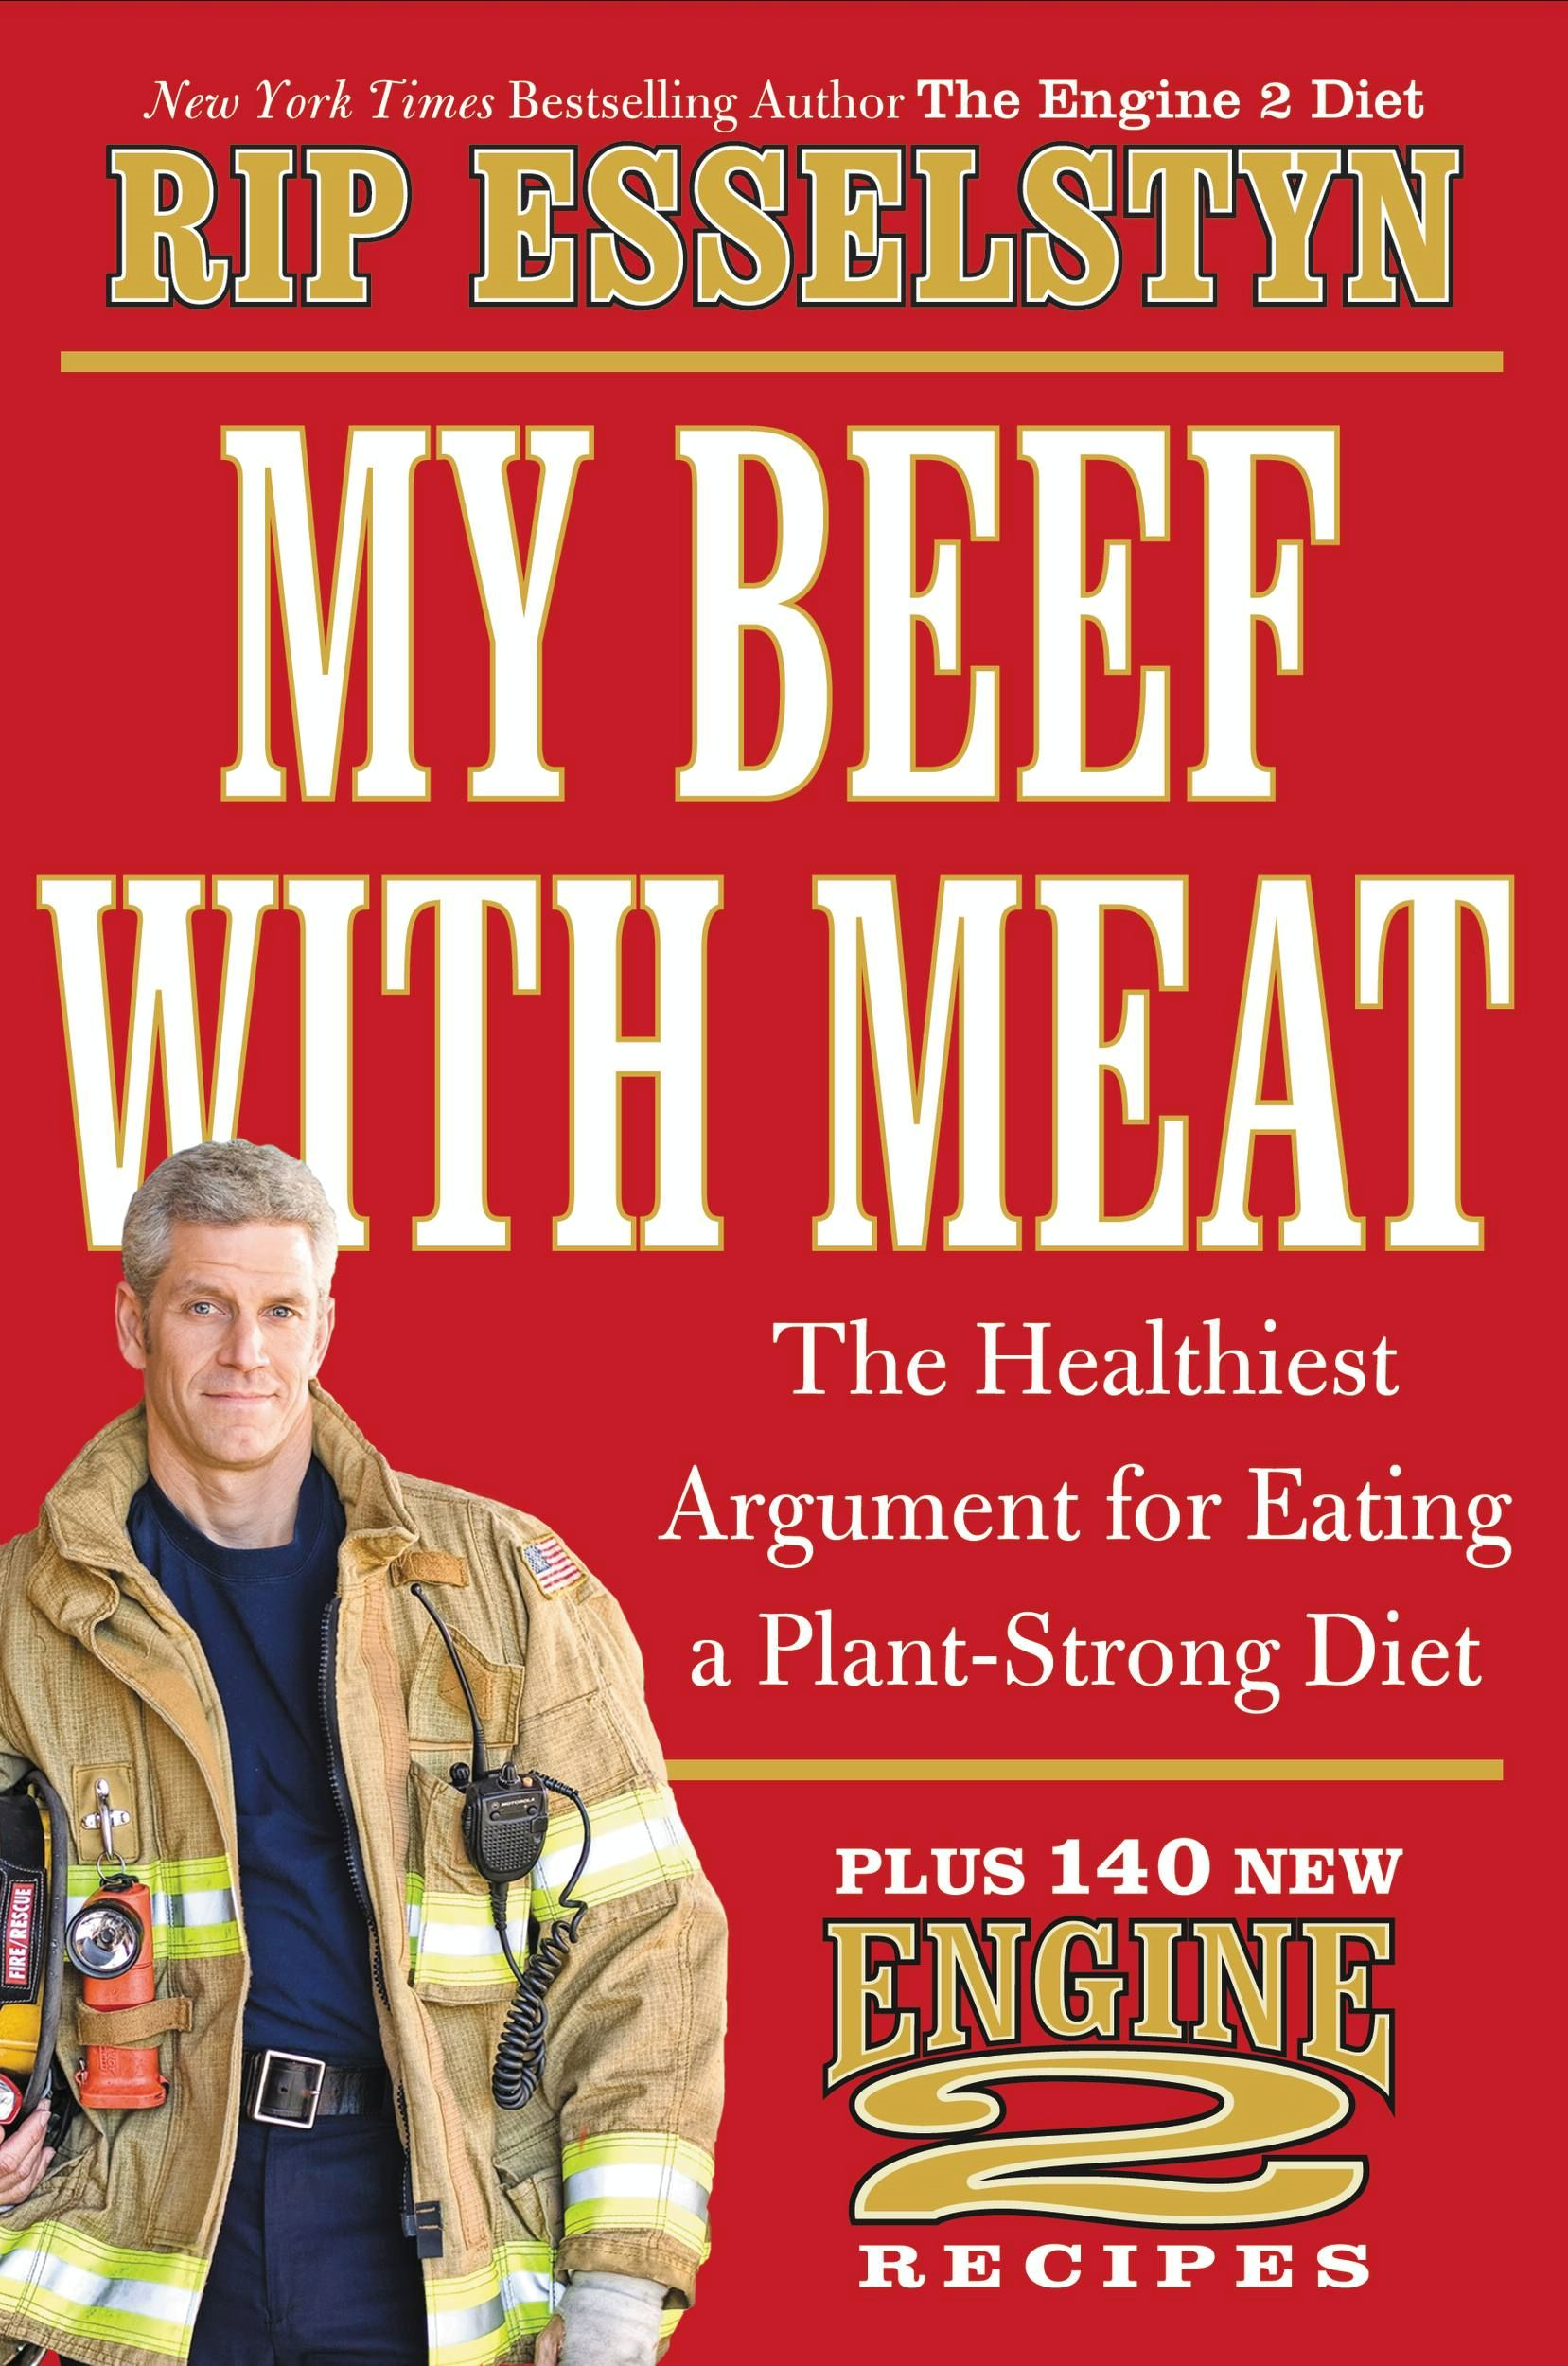 My Beef with Meat